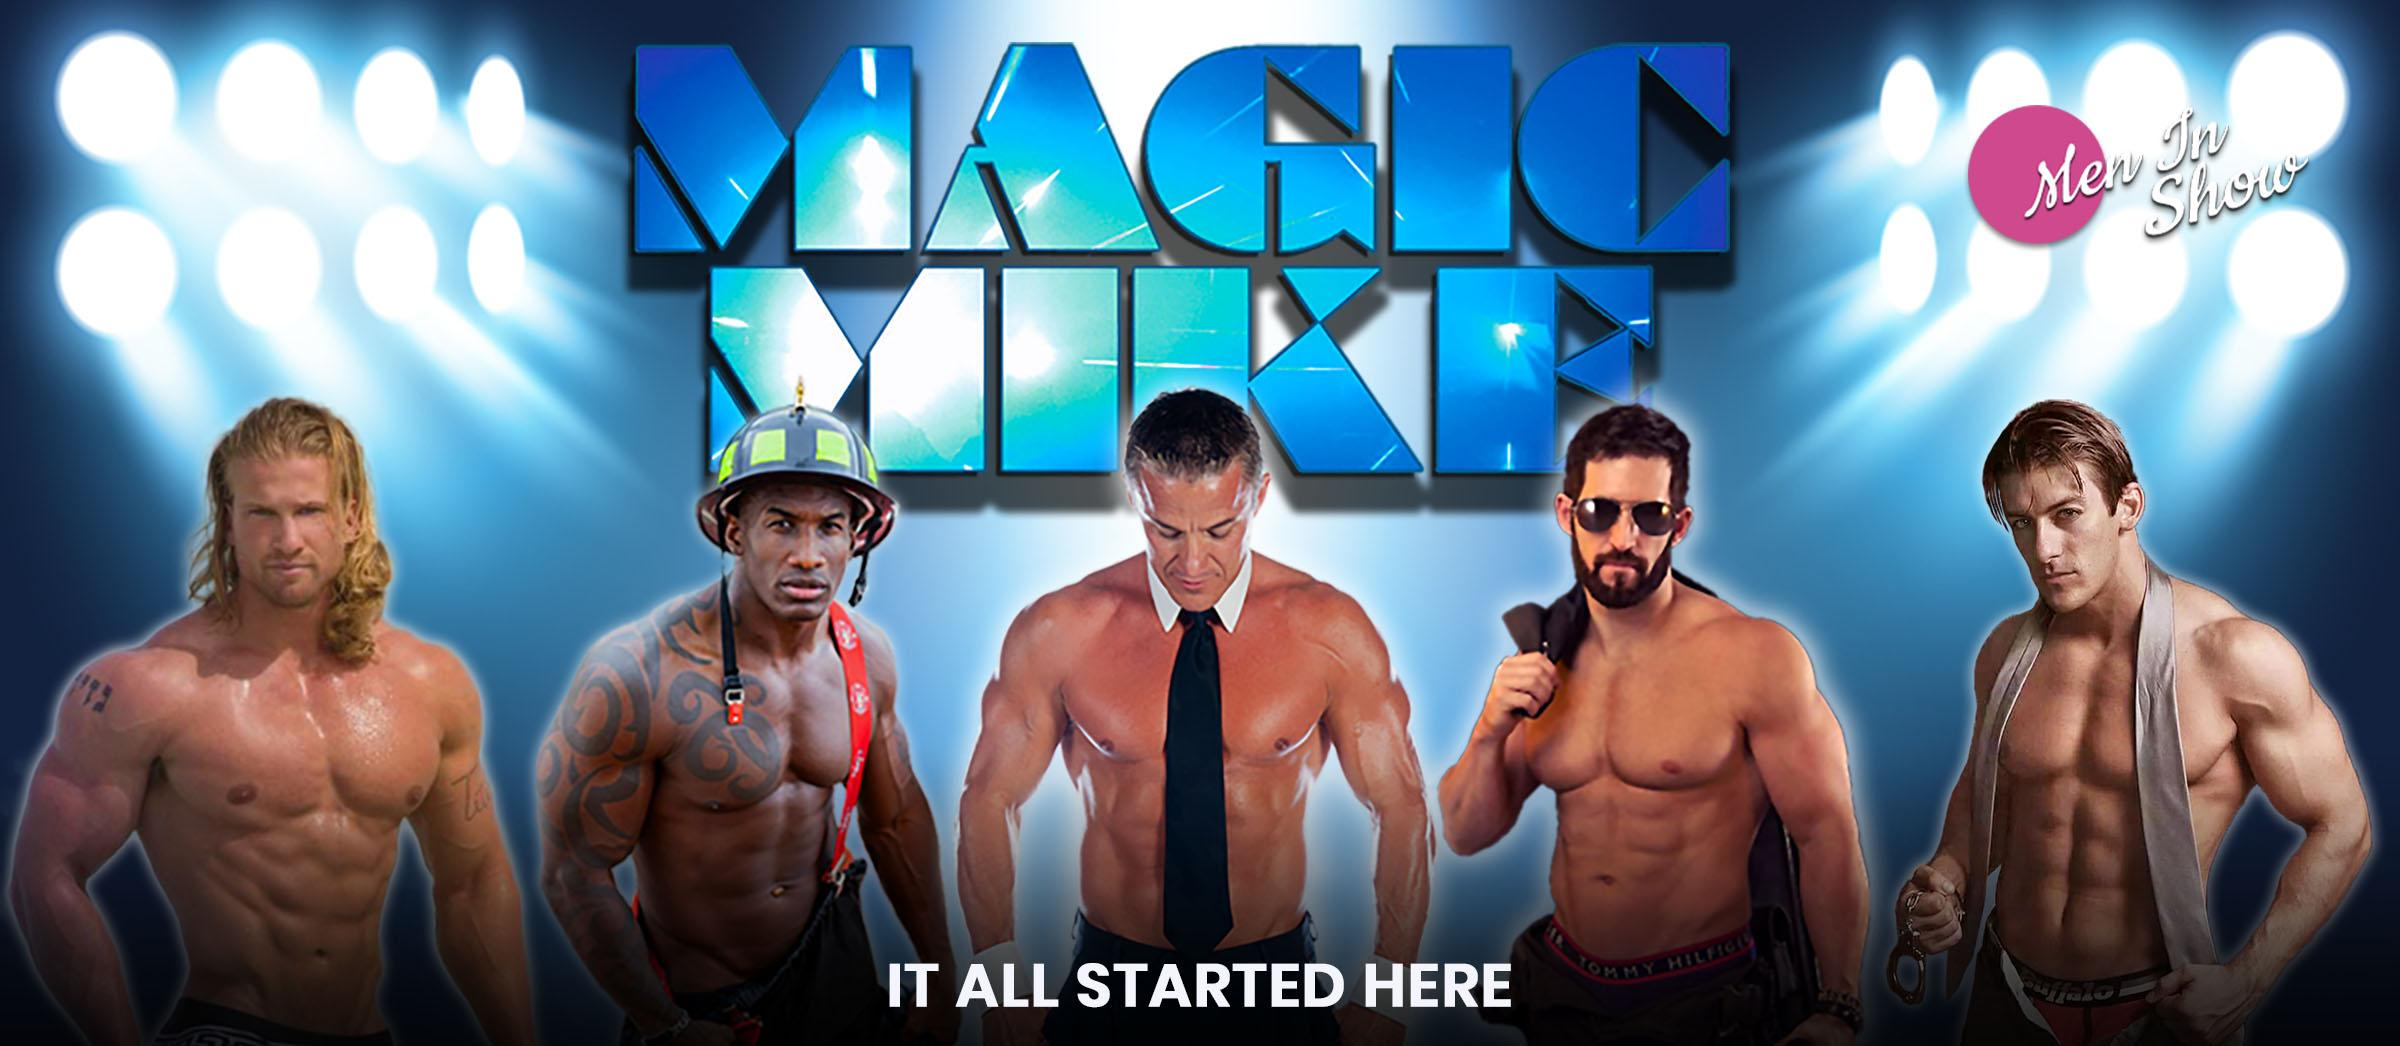 Magic Mike Saturday Nights with The Men Show